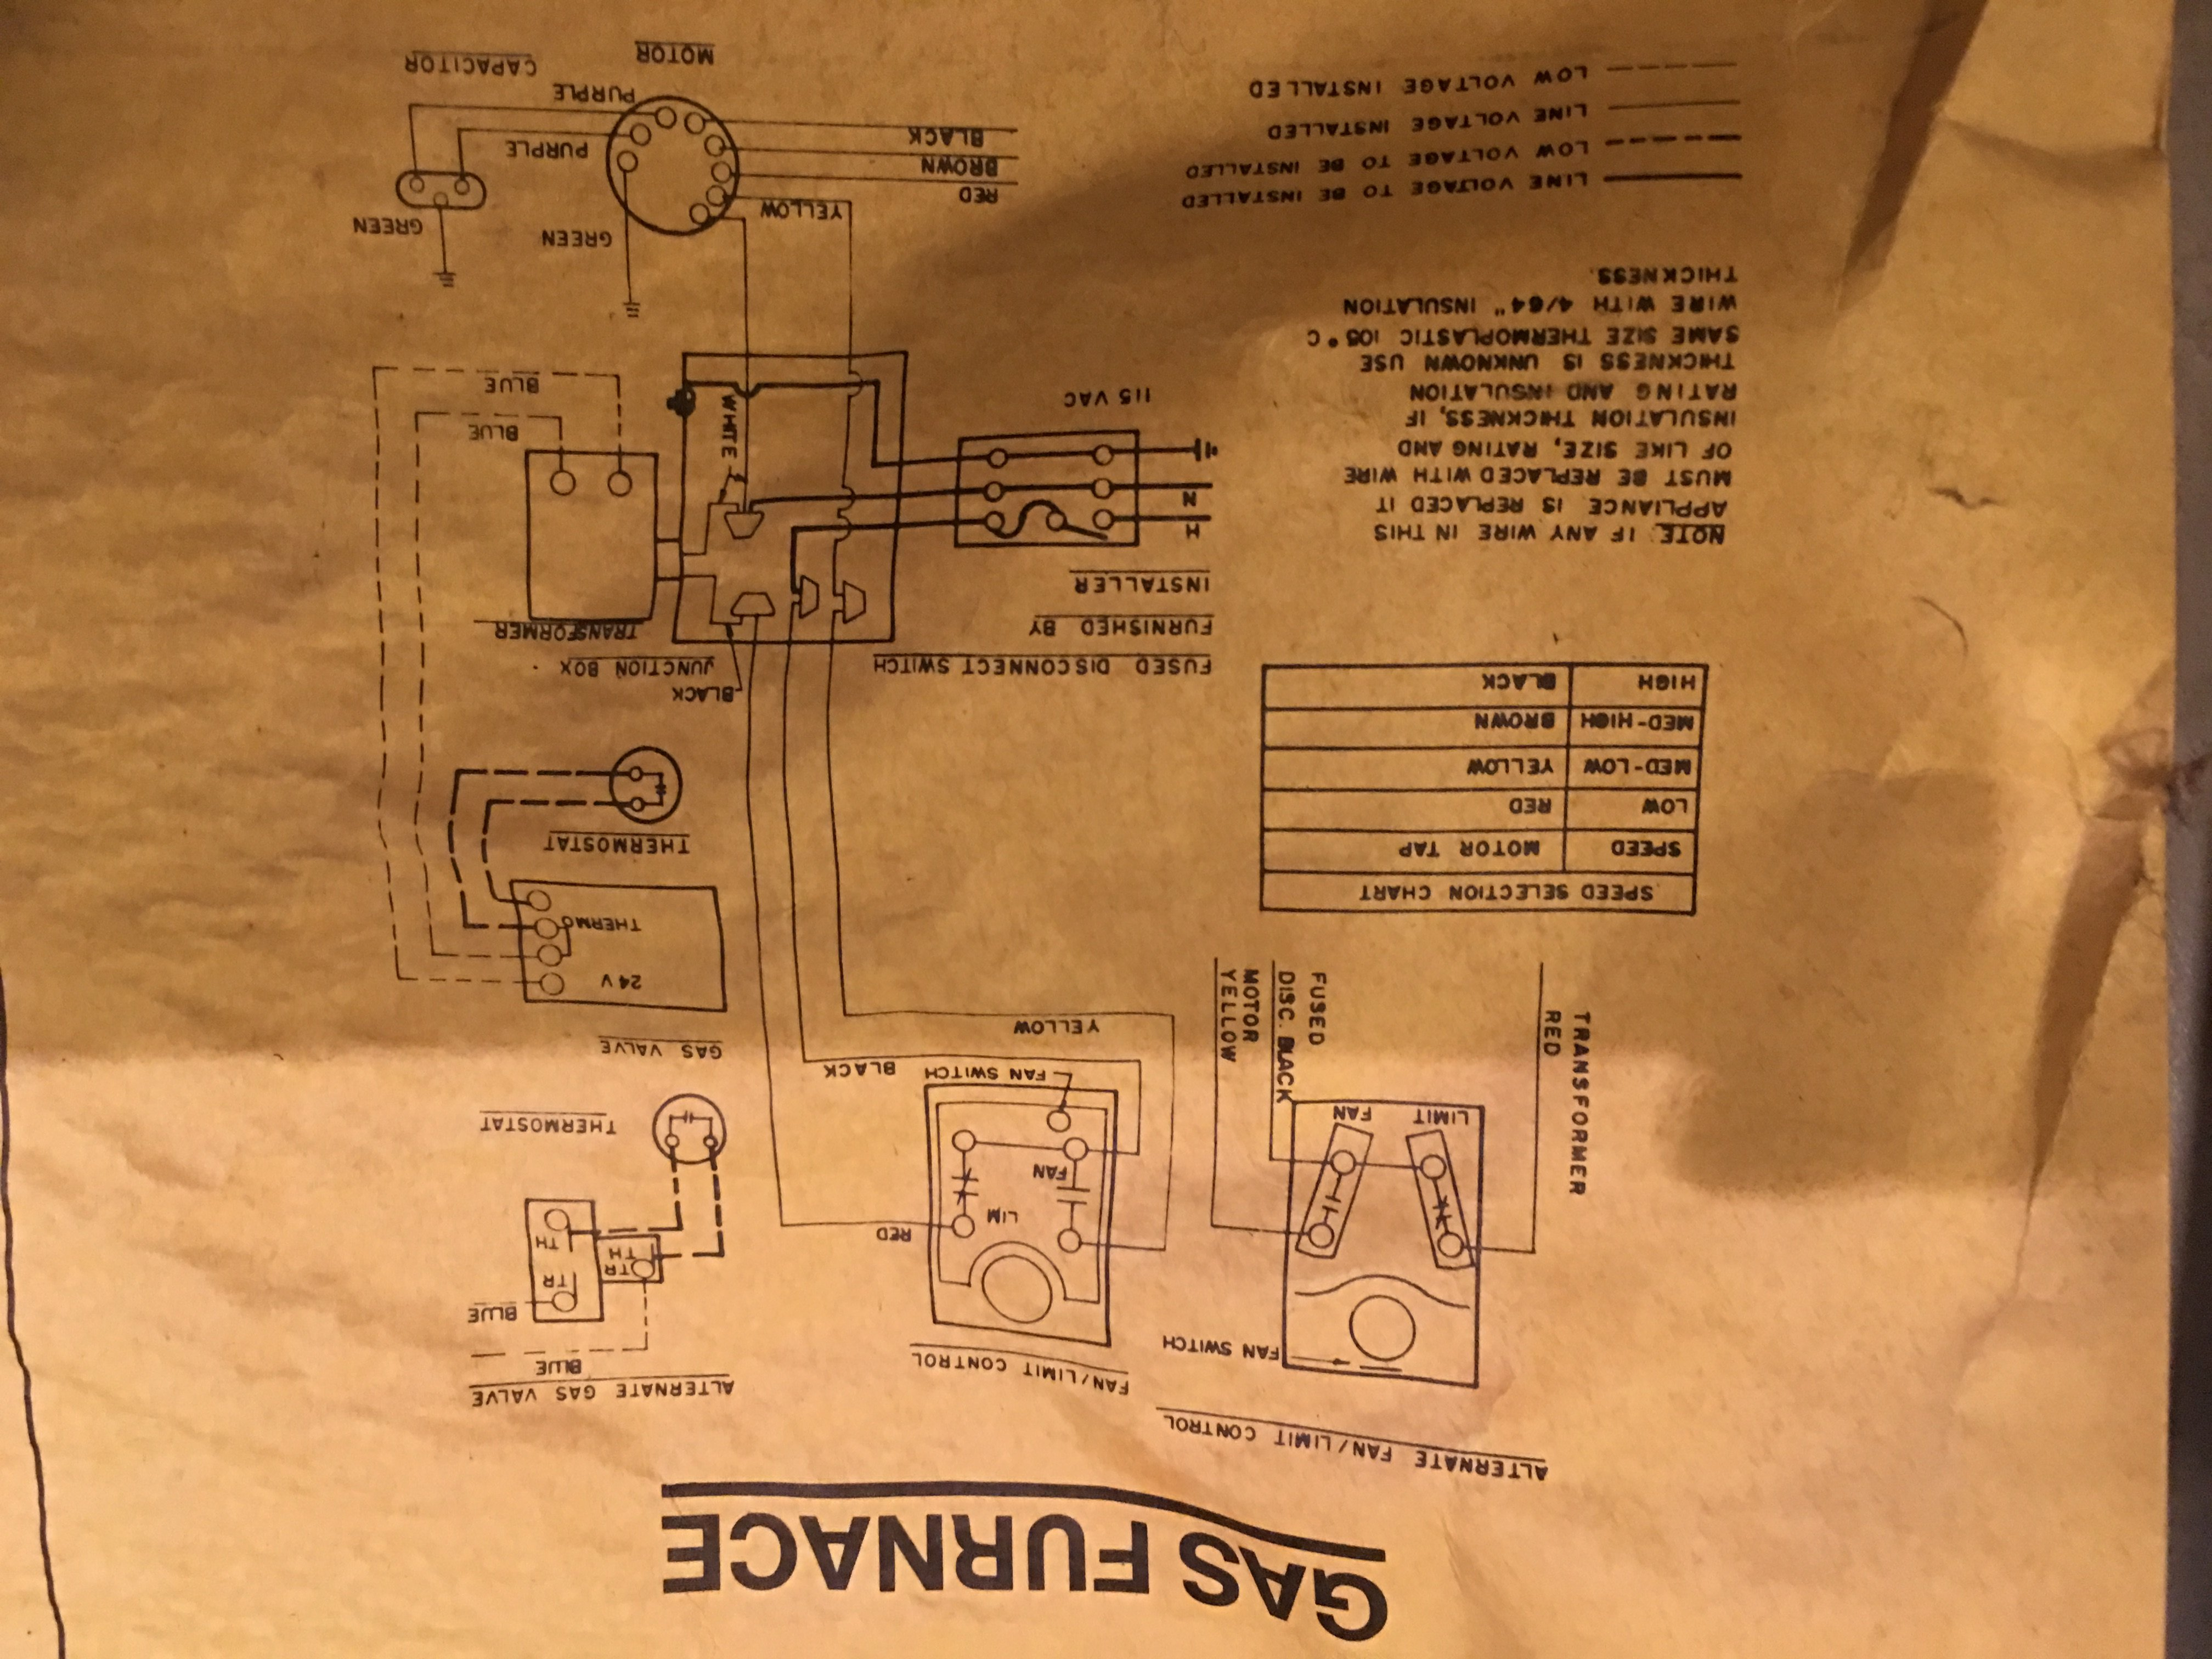 i have a lennox model g8q3 90 2 furnace that i want to hook a modernjpg furnace schematic jpg